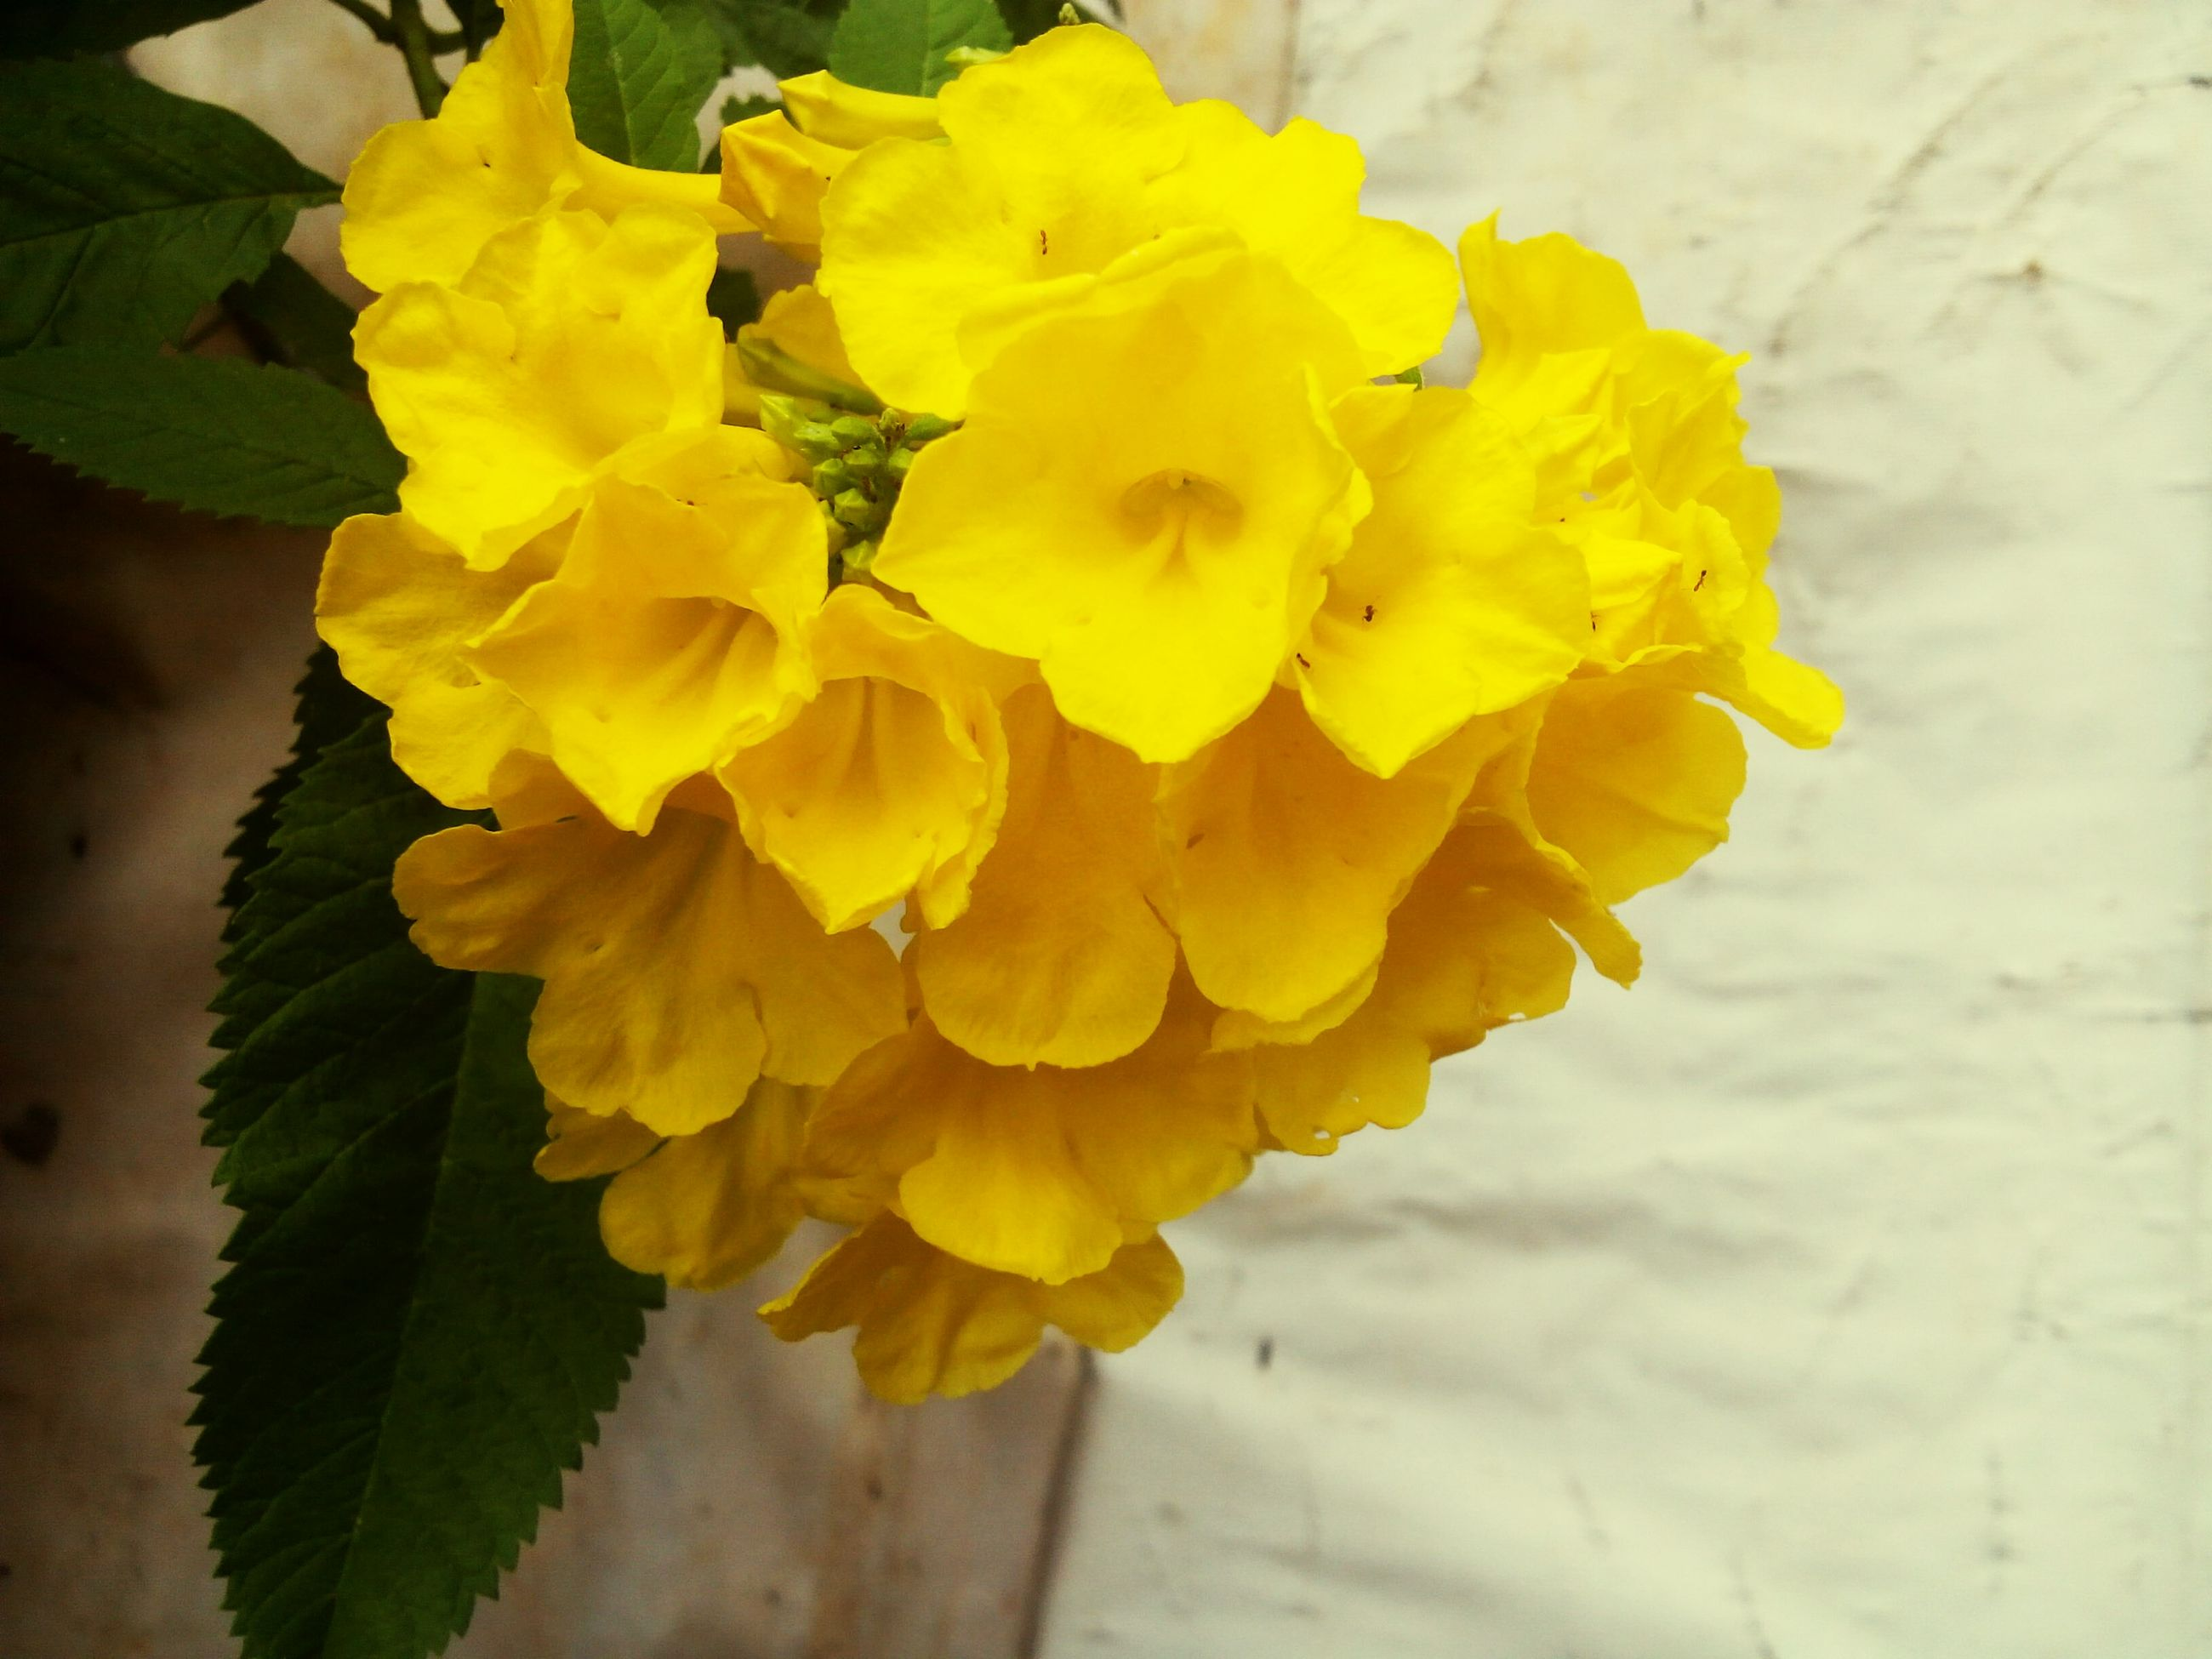 flower, petal, yellow, freshness, fragility, flower head, beauty in nature, growth, close-up, leaf, plant, nature, blooming, focus on foreground, in bloom, botany, blossom, single flower, rose - flower, day